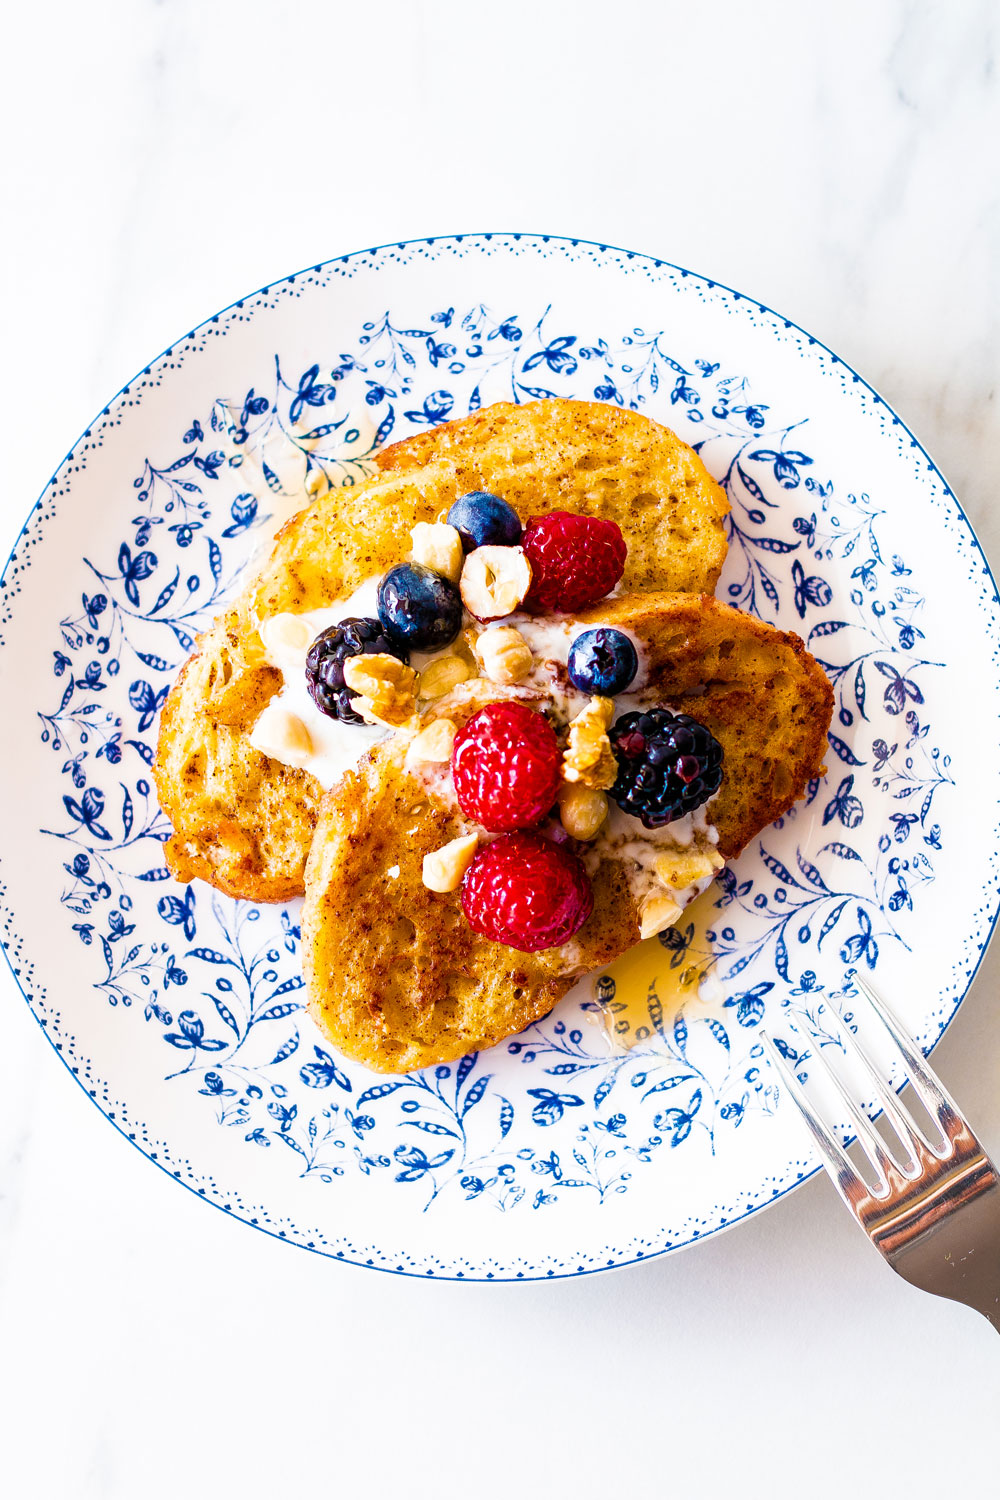 This healthy and easy French toast recipe is quick to make at home, and it's the perfect breakfast for weekends or any other day! https://www.spotebi.com/recipes/healthy-easy-french-toast-recipe/